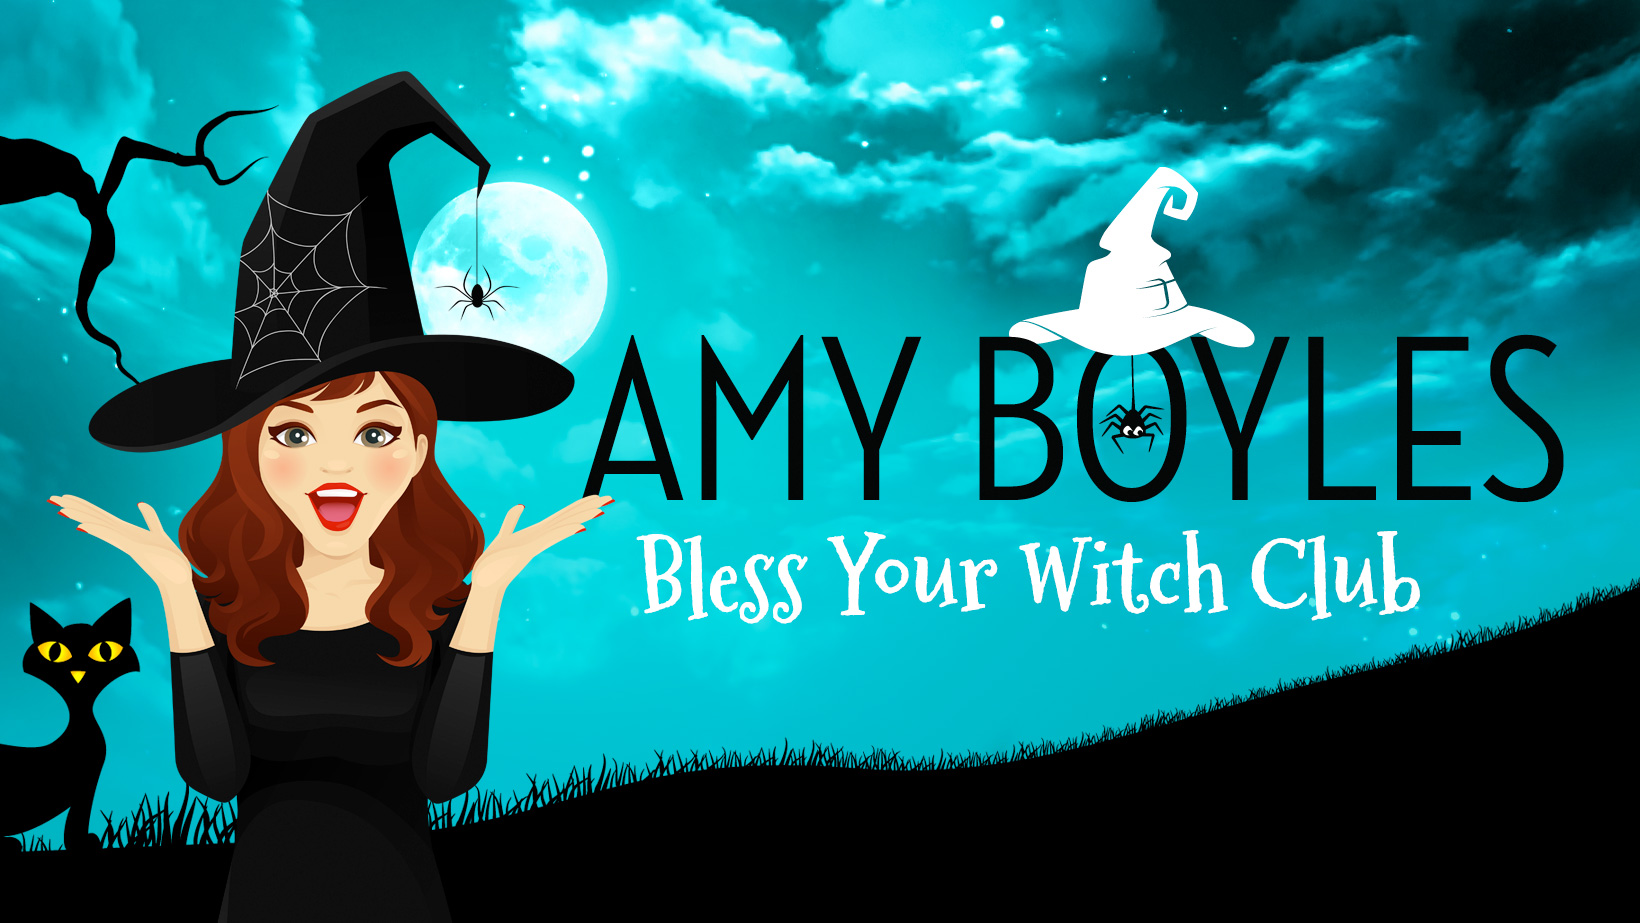 Bless Your Witch Club